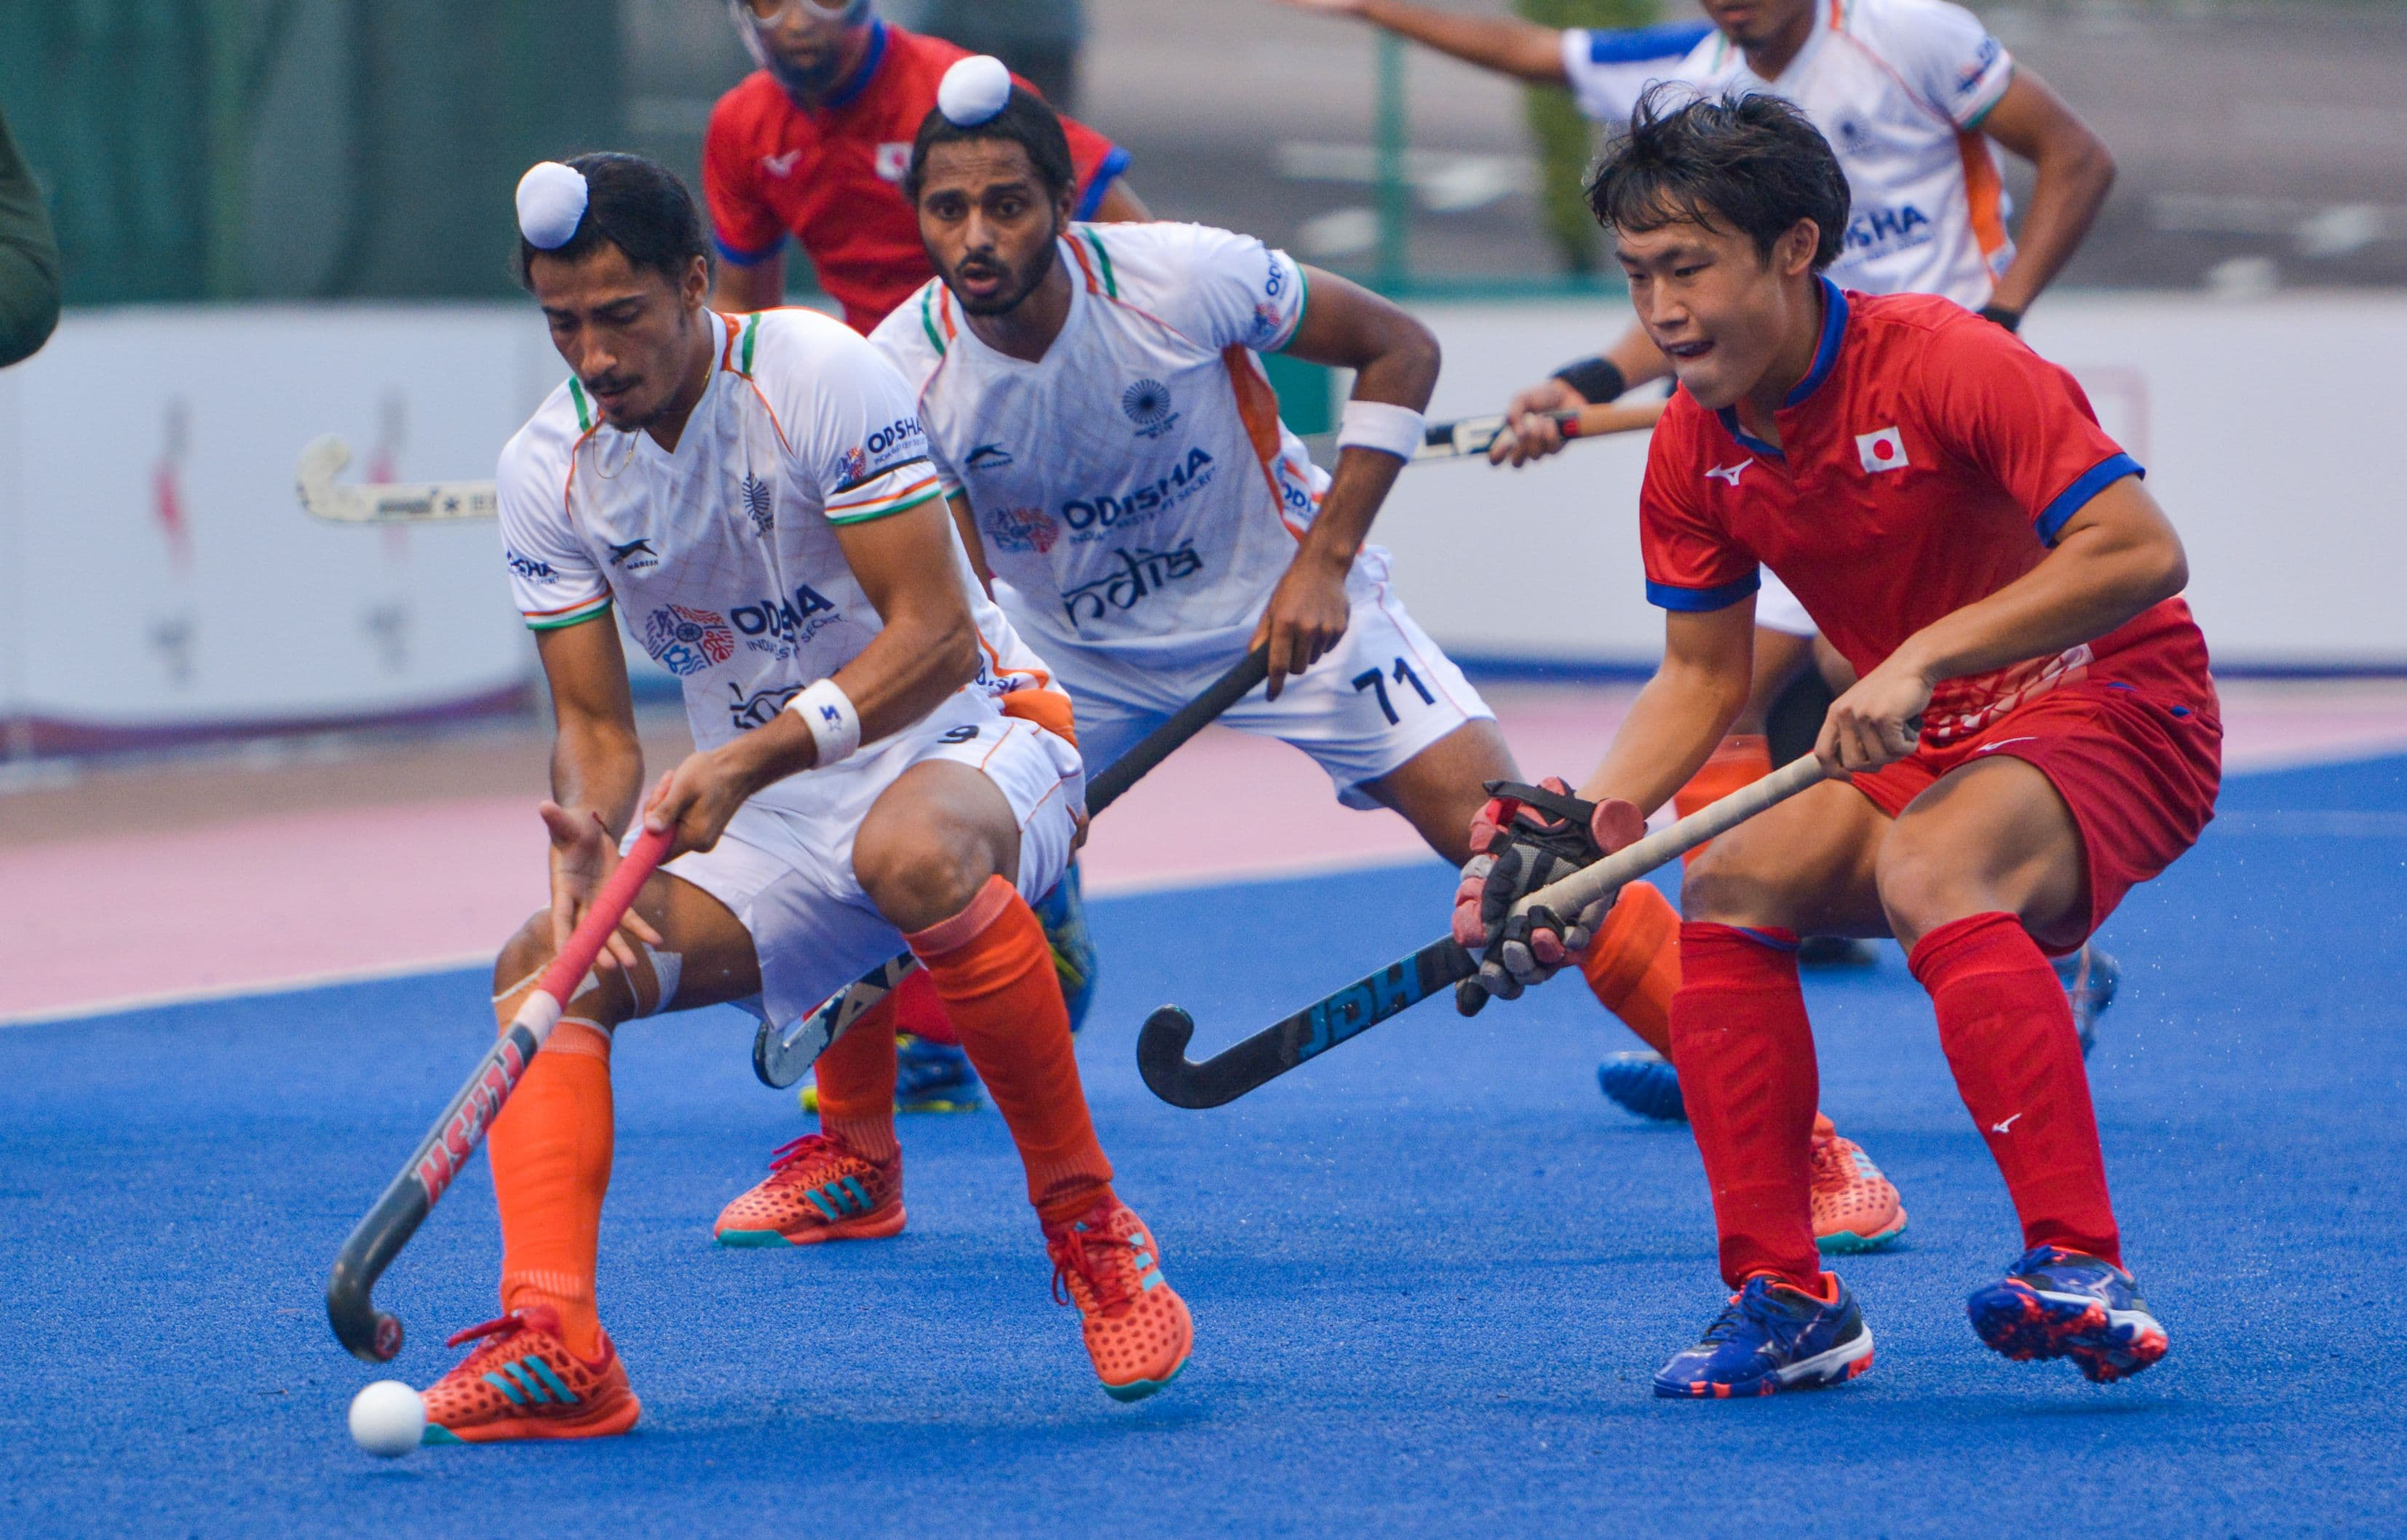 Sultan of Johor Cup 2019, Sultan of Johor Cup 2019 dates, Sultan of Johor Cup 2019 results, Sultan of Johor Cup 2019 schedule, Sultan of Johor Cup 2019 live streaming, Sultan of Johor Cup 2019 points table, Hockey India, India U-21 Men's Hockey Team, Sultan of Johor Cup hockey tournament, Hockey India, Latest Sports News, India Men's Hockey Team, Hockey News, Hockey Tournament